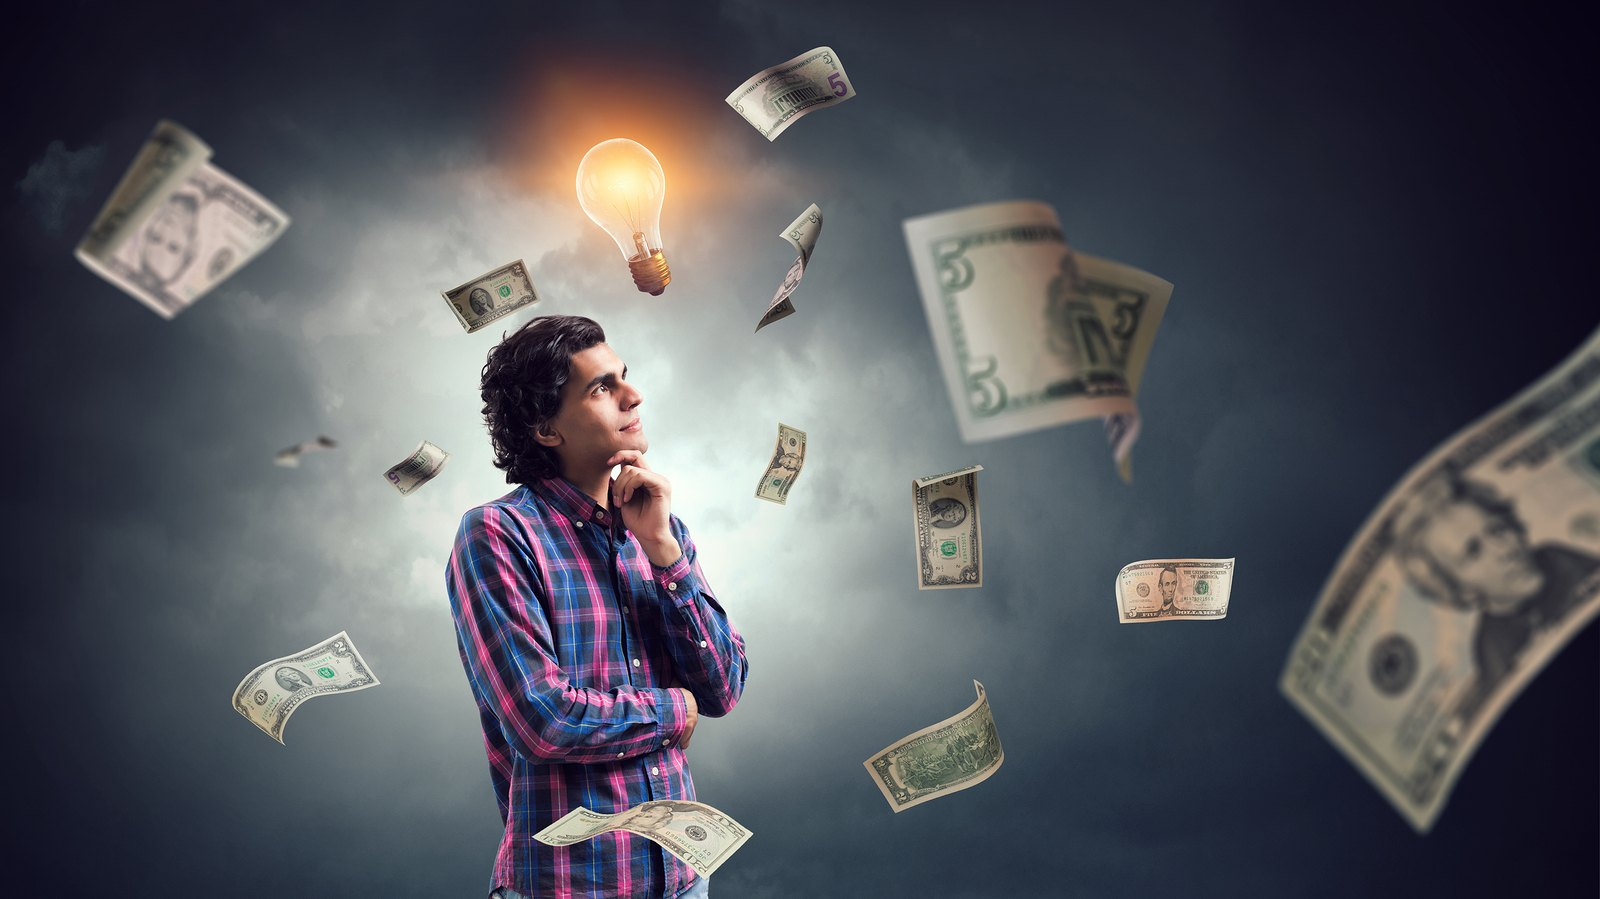 Making Money Without Financial Know-How